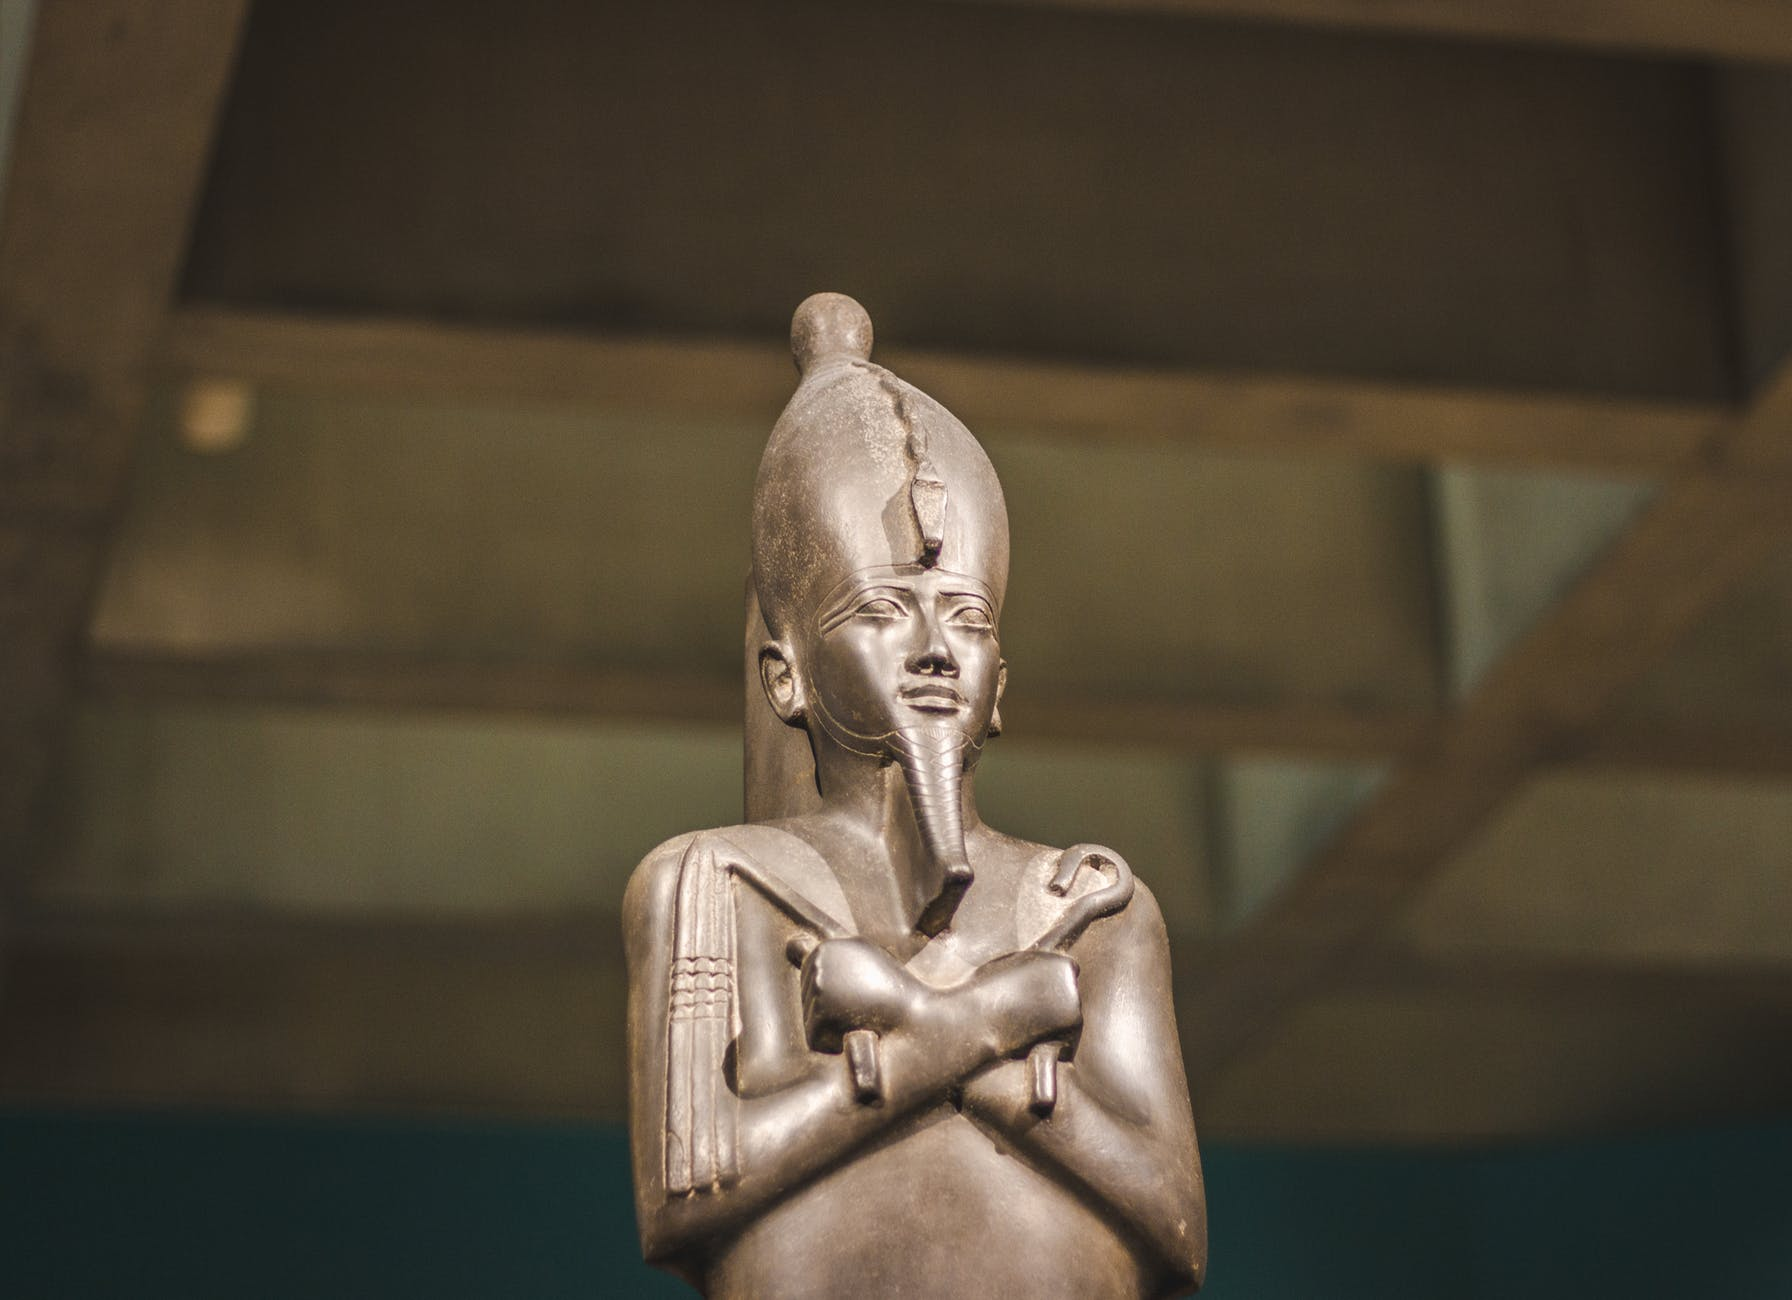 close up photo of pharaoh figurine